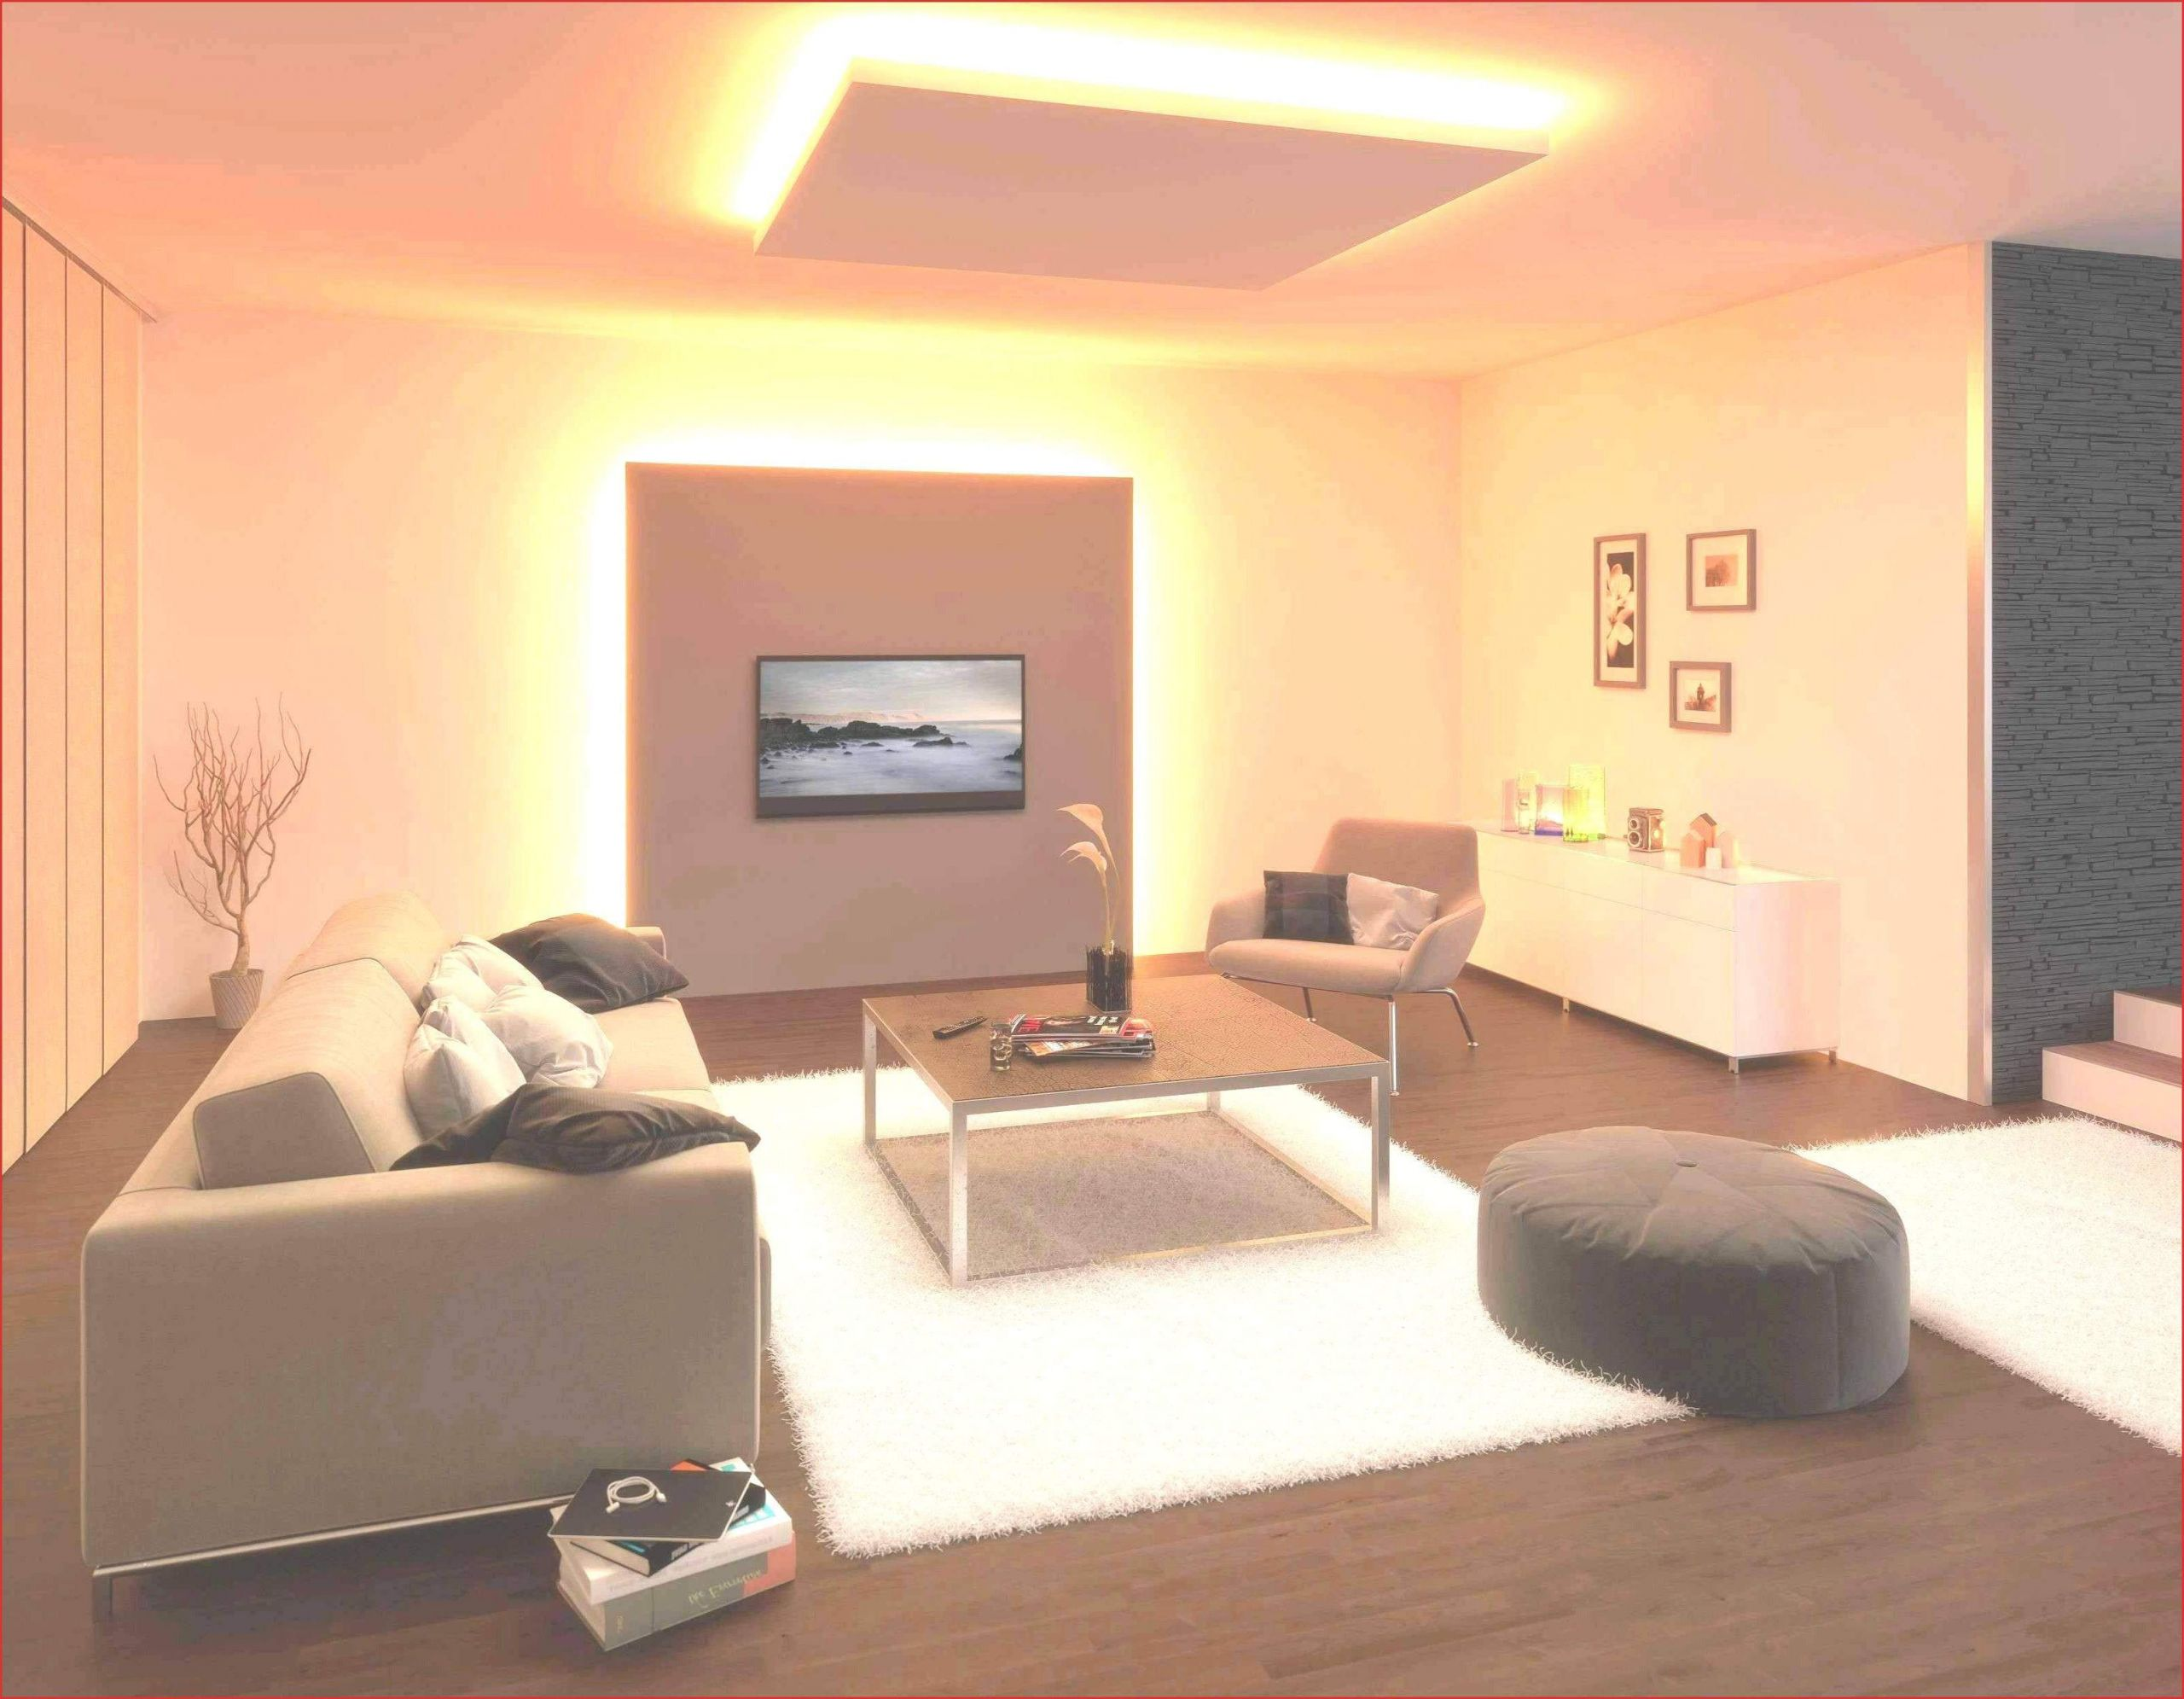 Full Size of Led Beleuchtung Wohnzimmer Ebay Led Beleuchtung Wohnzimmerschrank Led Beleuchtung Wohnzimmer Ideen Led Leuchten Für Wohnzimmer Wohnzimmer Led Beleuchtung Wohnzimmer